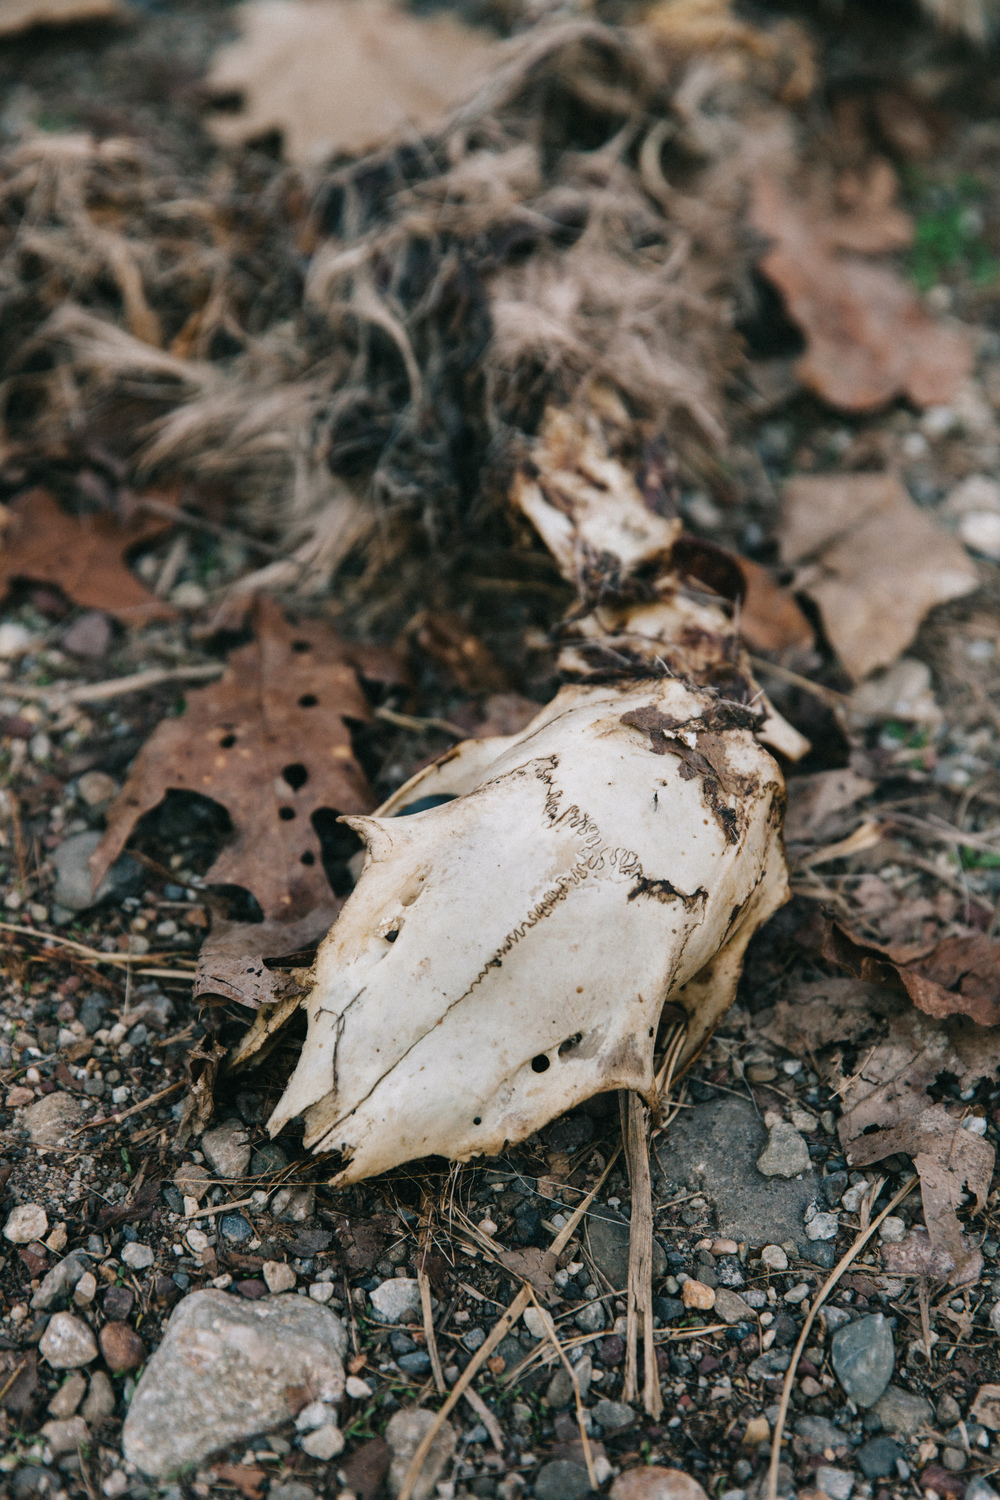 Photographed is a deer skull, which was eaten by coyotes.